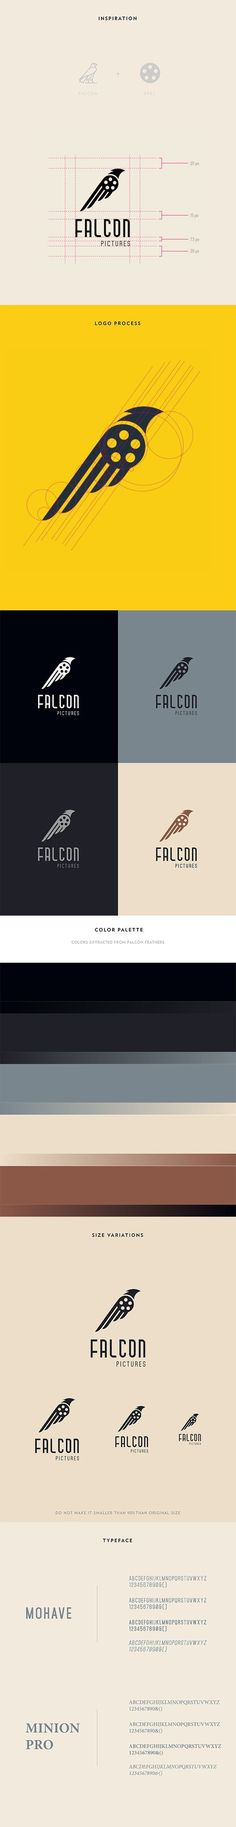 Falcon Pictures Logo Design by Grunz Saint / animal. I picked this design because I enjoyed the different take on the bird and I enjoyed the design of the wings. Coperate Design, Design Logo, Brand Identity Design, Graphic Design Branding, Icon Design, Label Design, Typography Logo, Logo Branding, Typography Design